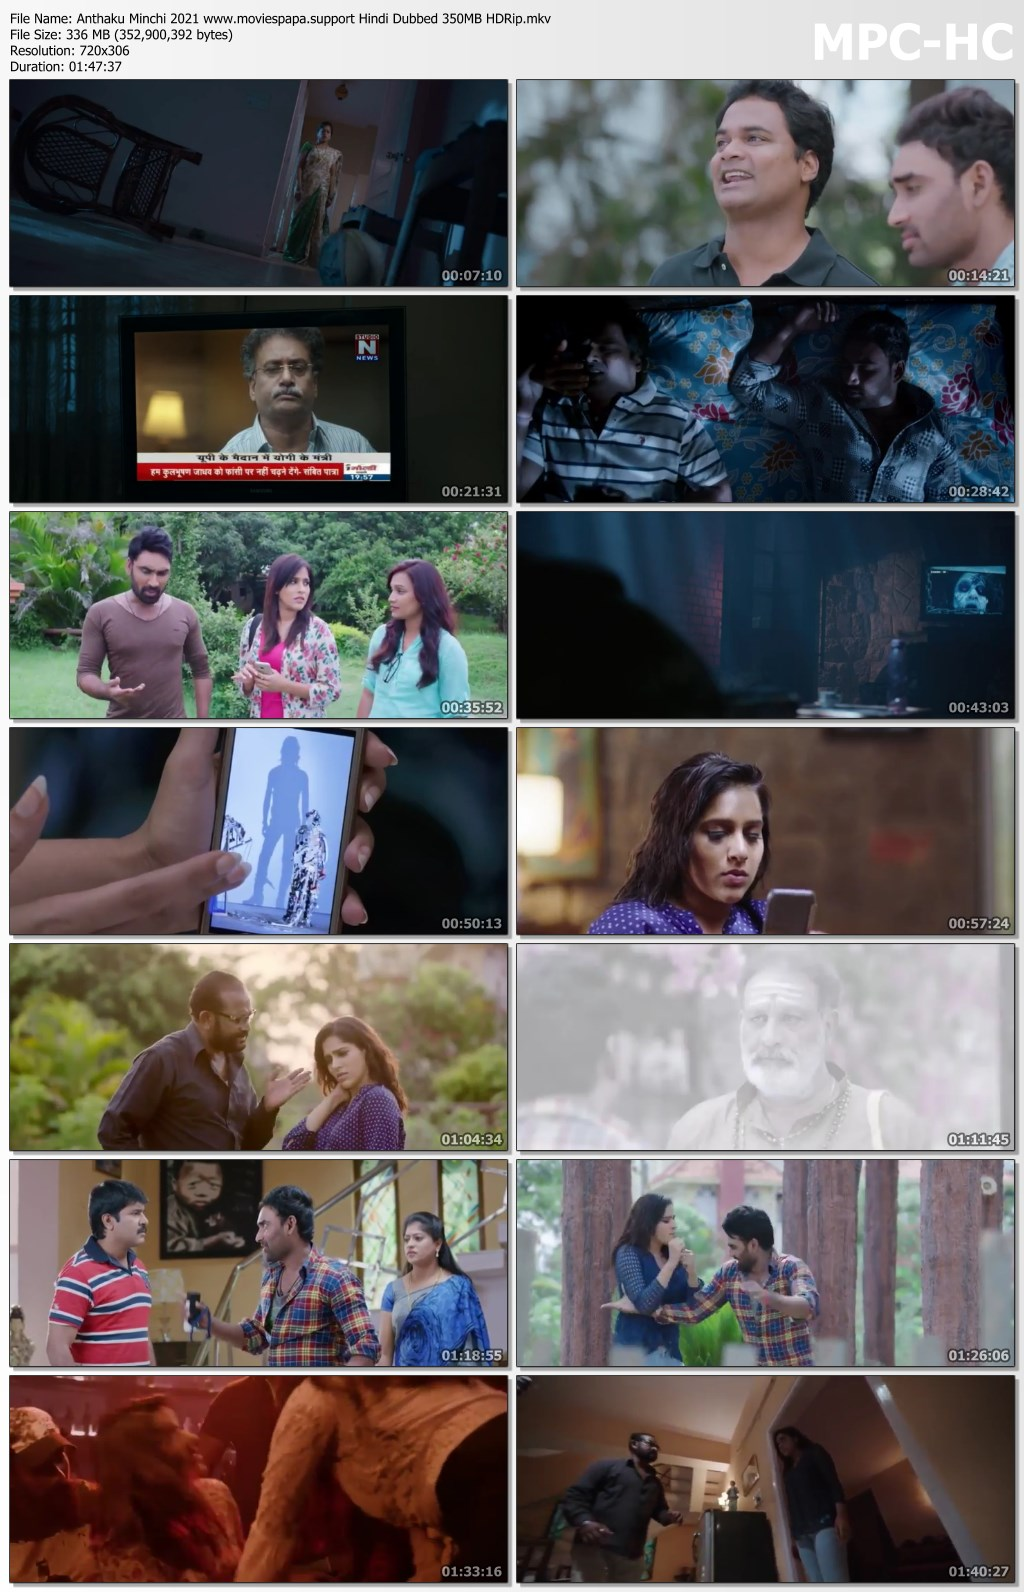 Anthaku Minchi bingtorrent Screen shots